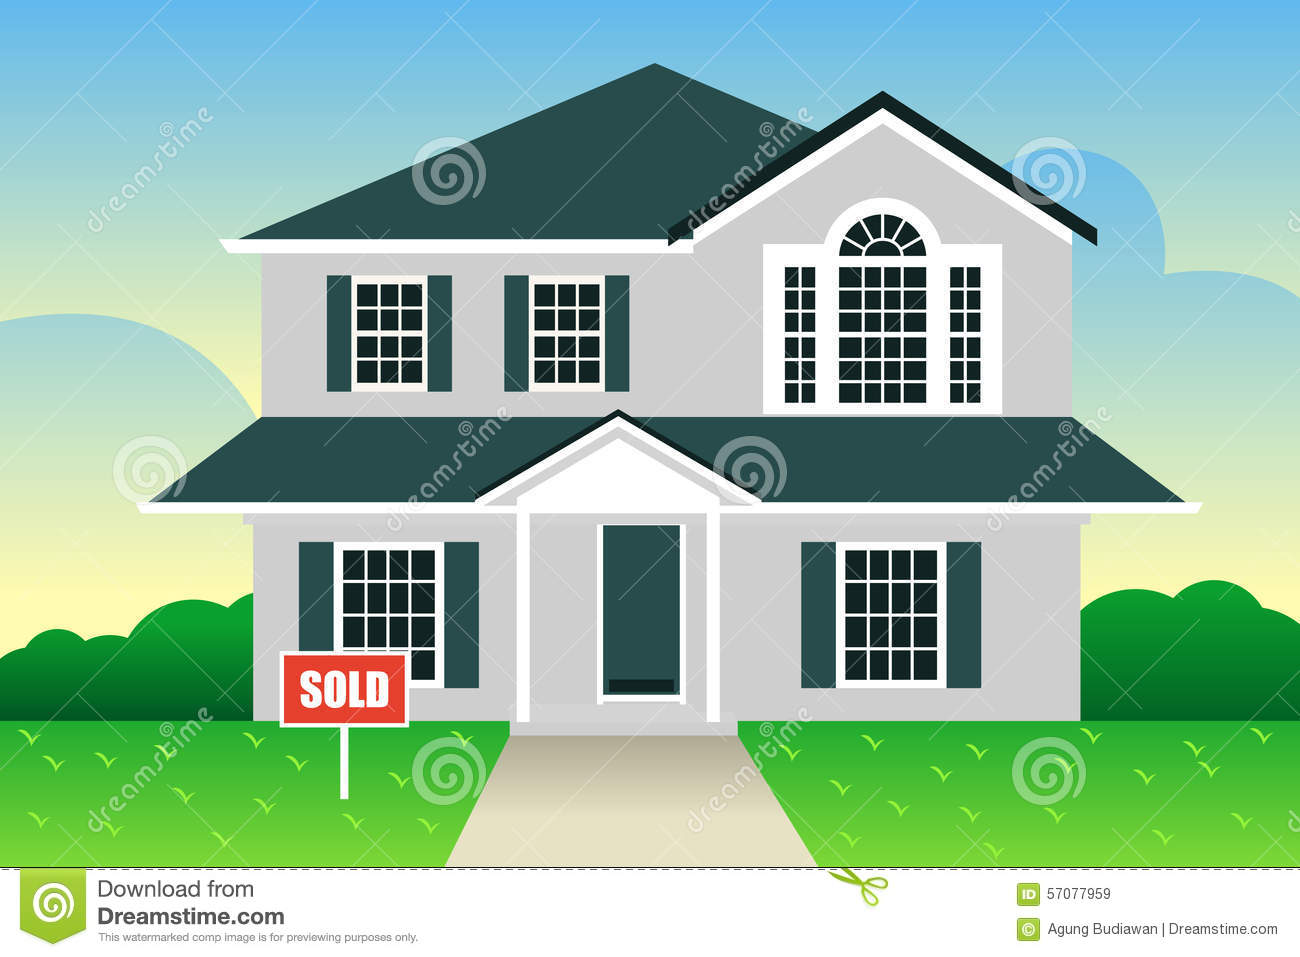 free clipart house for sale - photo #41